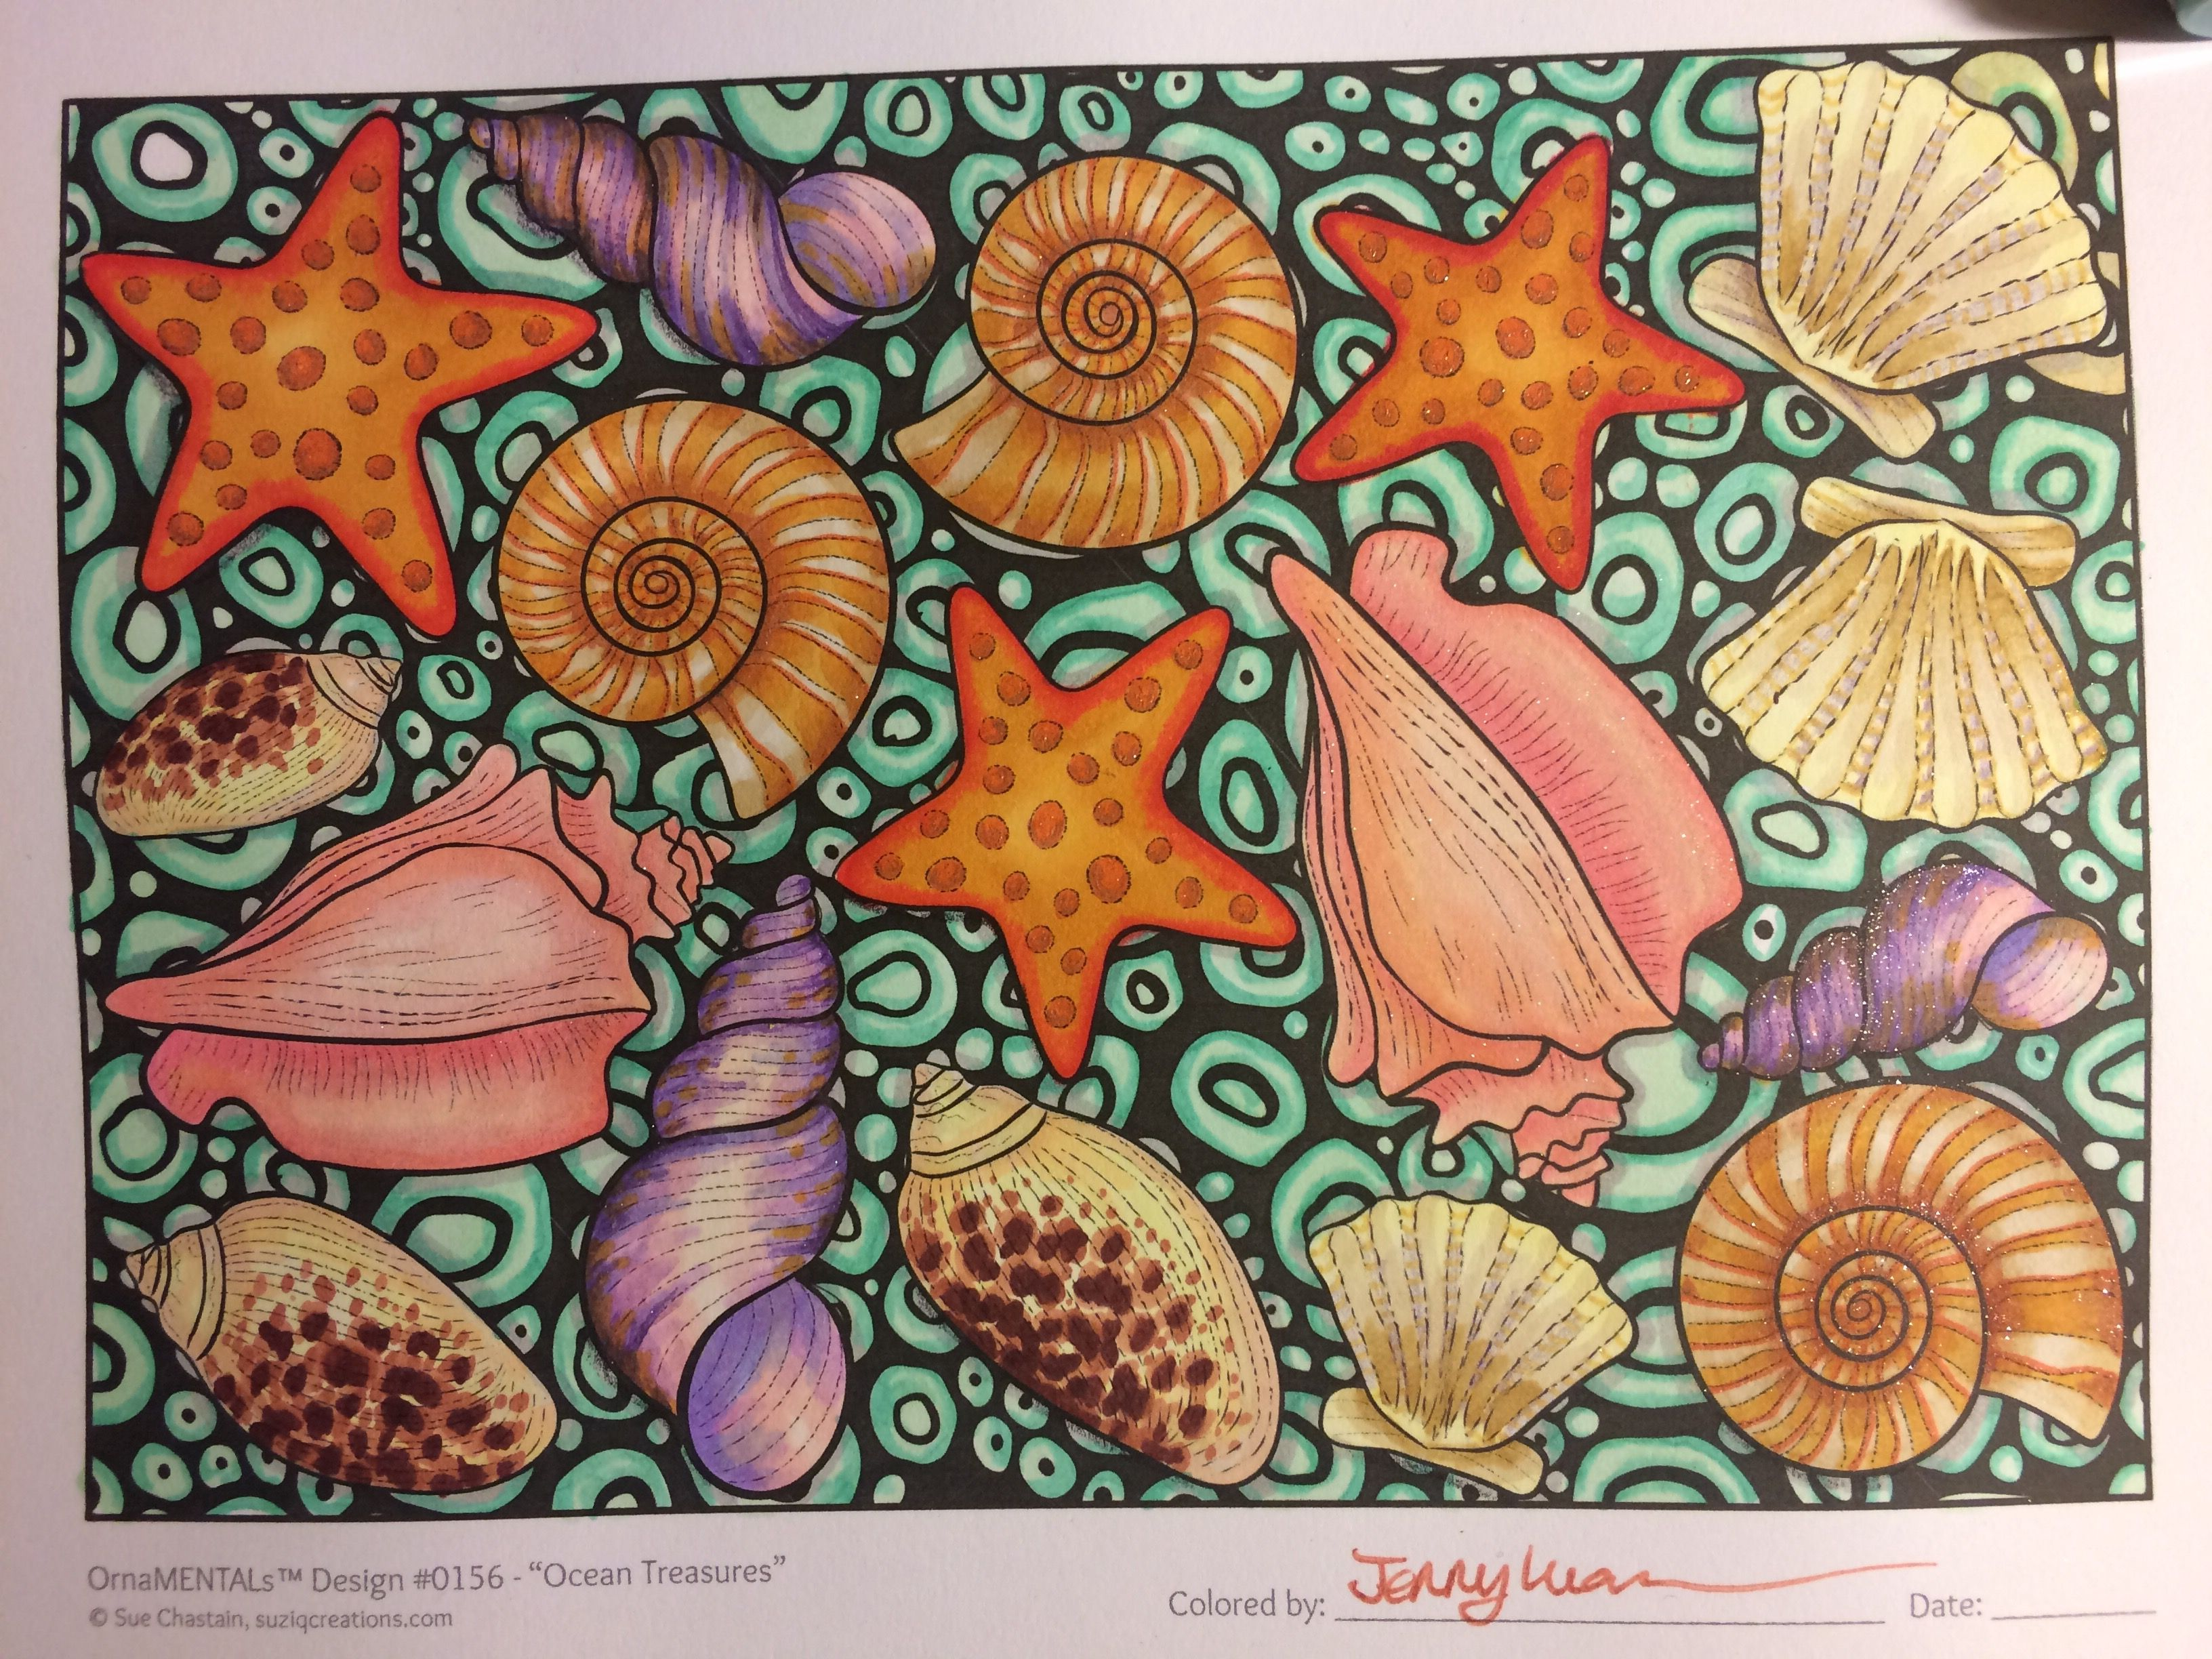 From OrnaMENTALs Lights Out Colored By Jenny Luan This Printable Coloring Book Includes Both